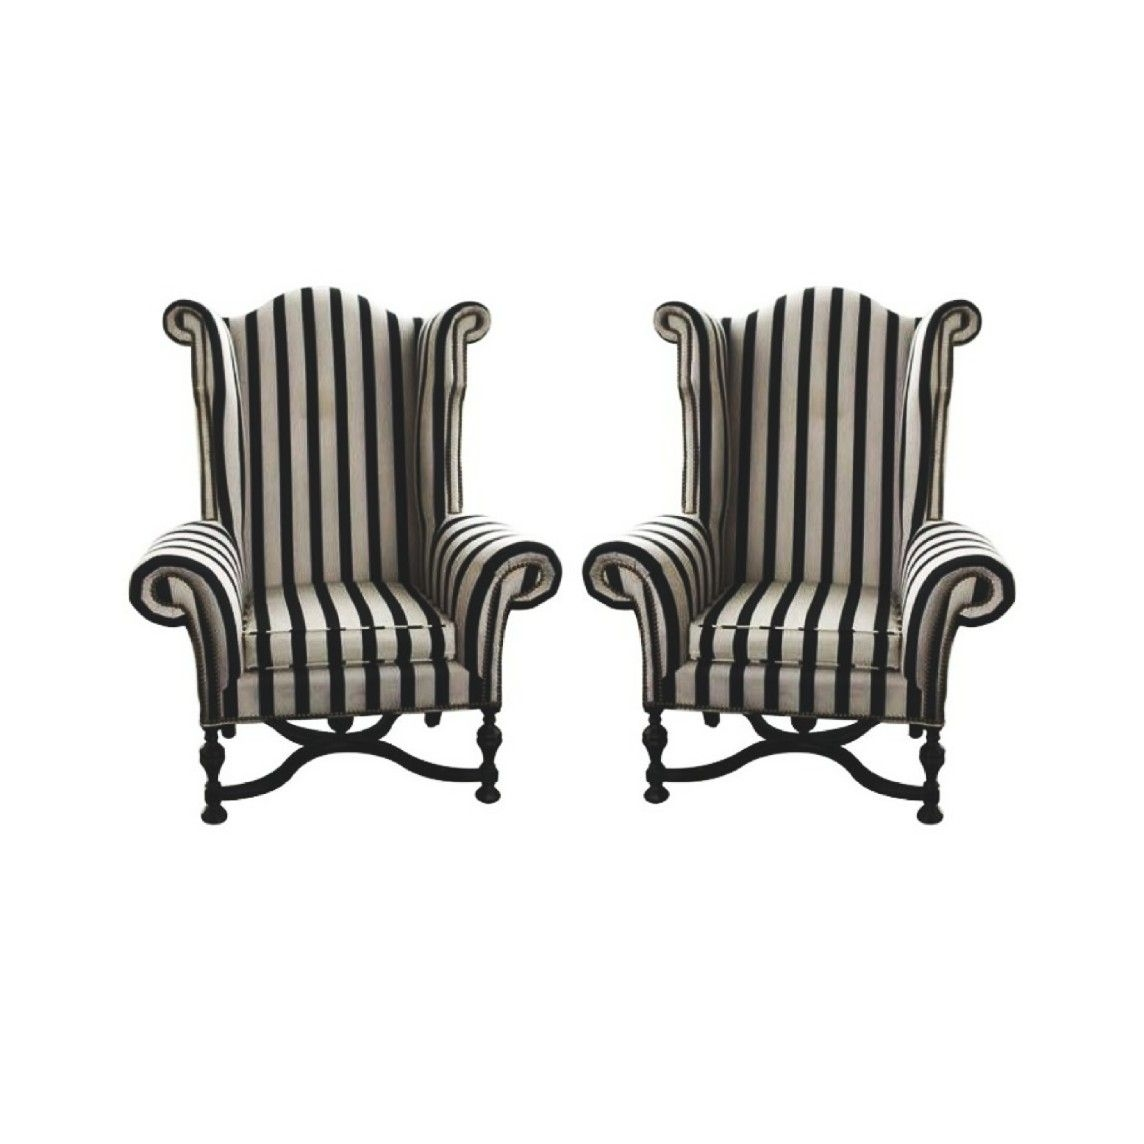 Antique And Sophisticated Approach To An Old Fashioned, Traditional Wing  Chair With Curled Armrests. The Black And White Striped Pattern Of The  Cotton ...